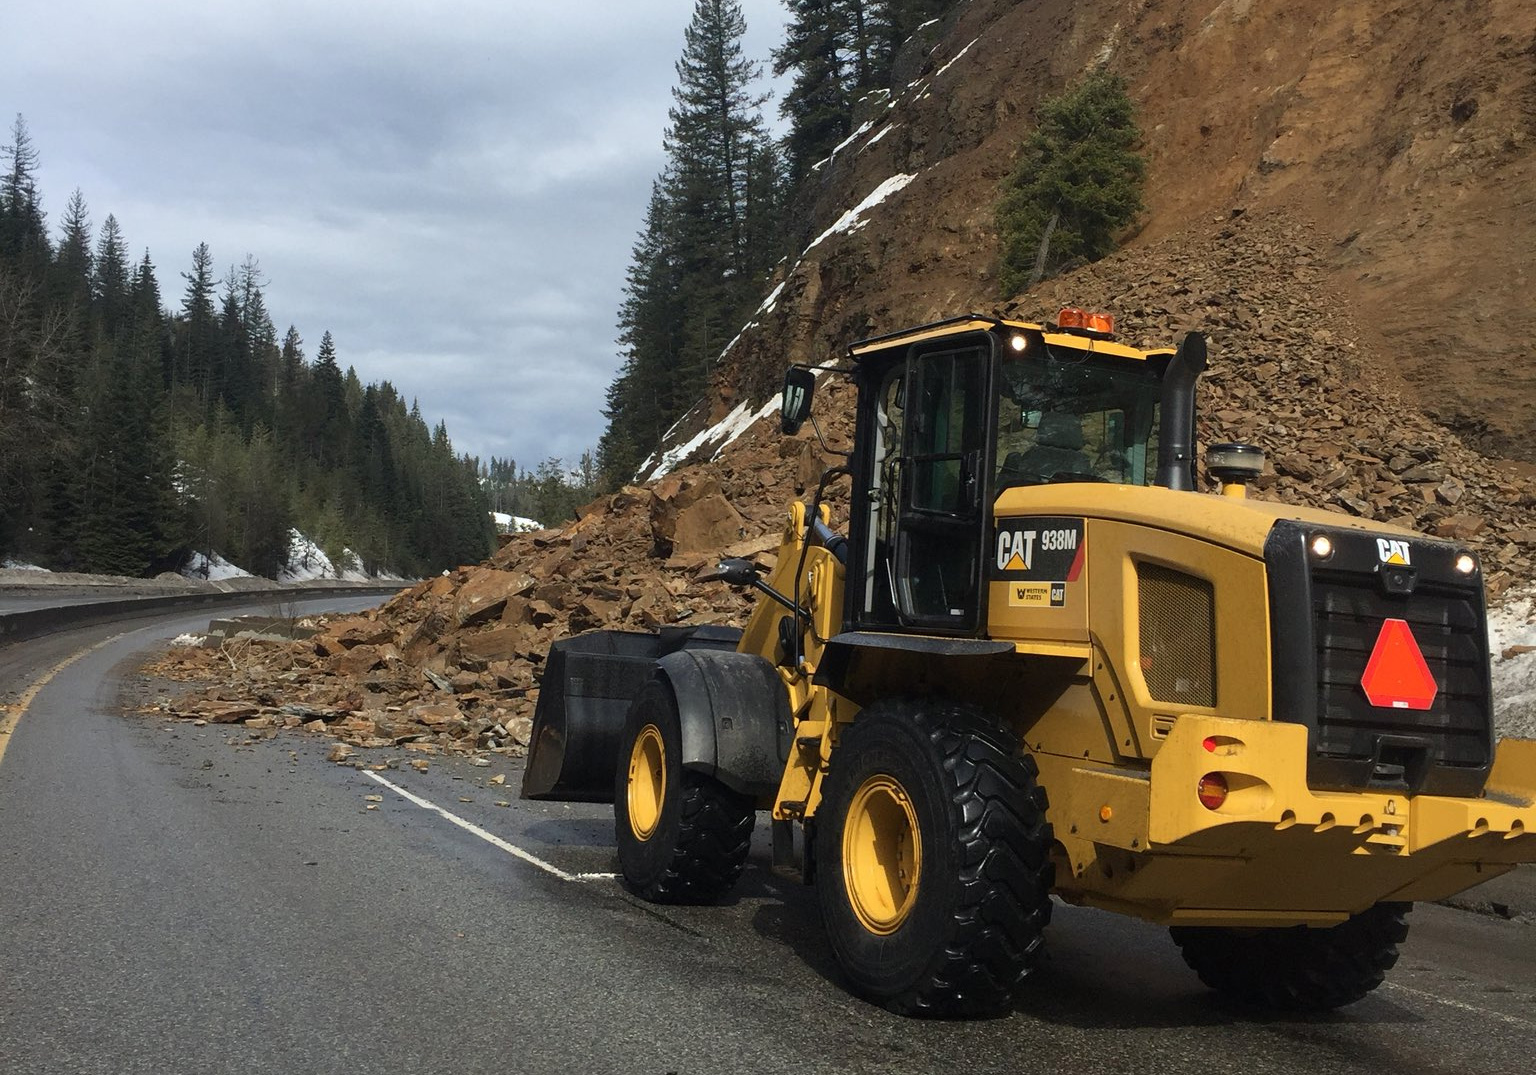 A rock slide is blocking westbound lanes along Interstate-90 in northern Idaho near 4th of July Pass. Idaho Transportation Department officials say traffic could be reduced to one lane in the area for as much as three days. (ISP photo)